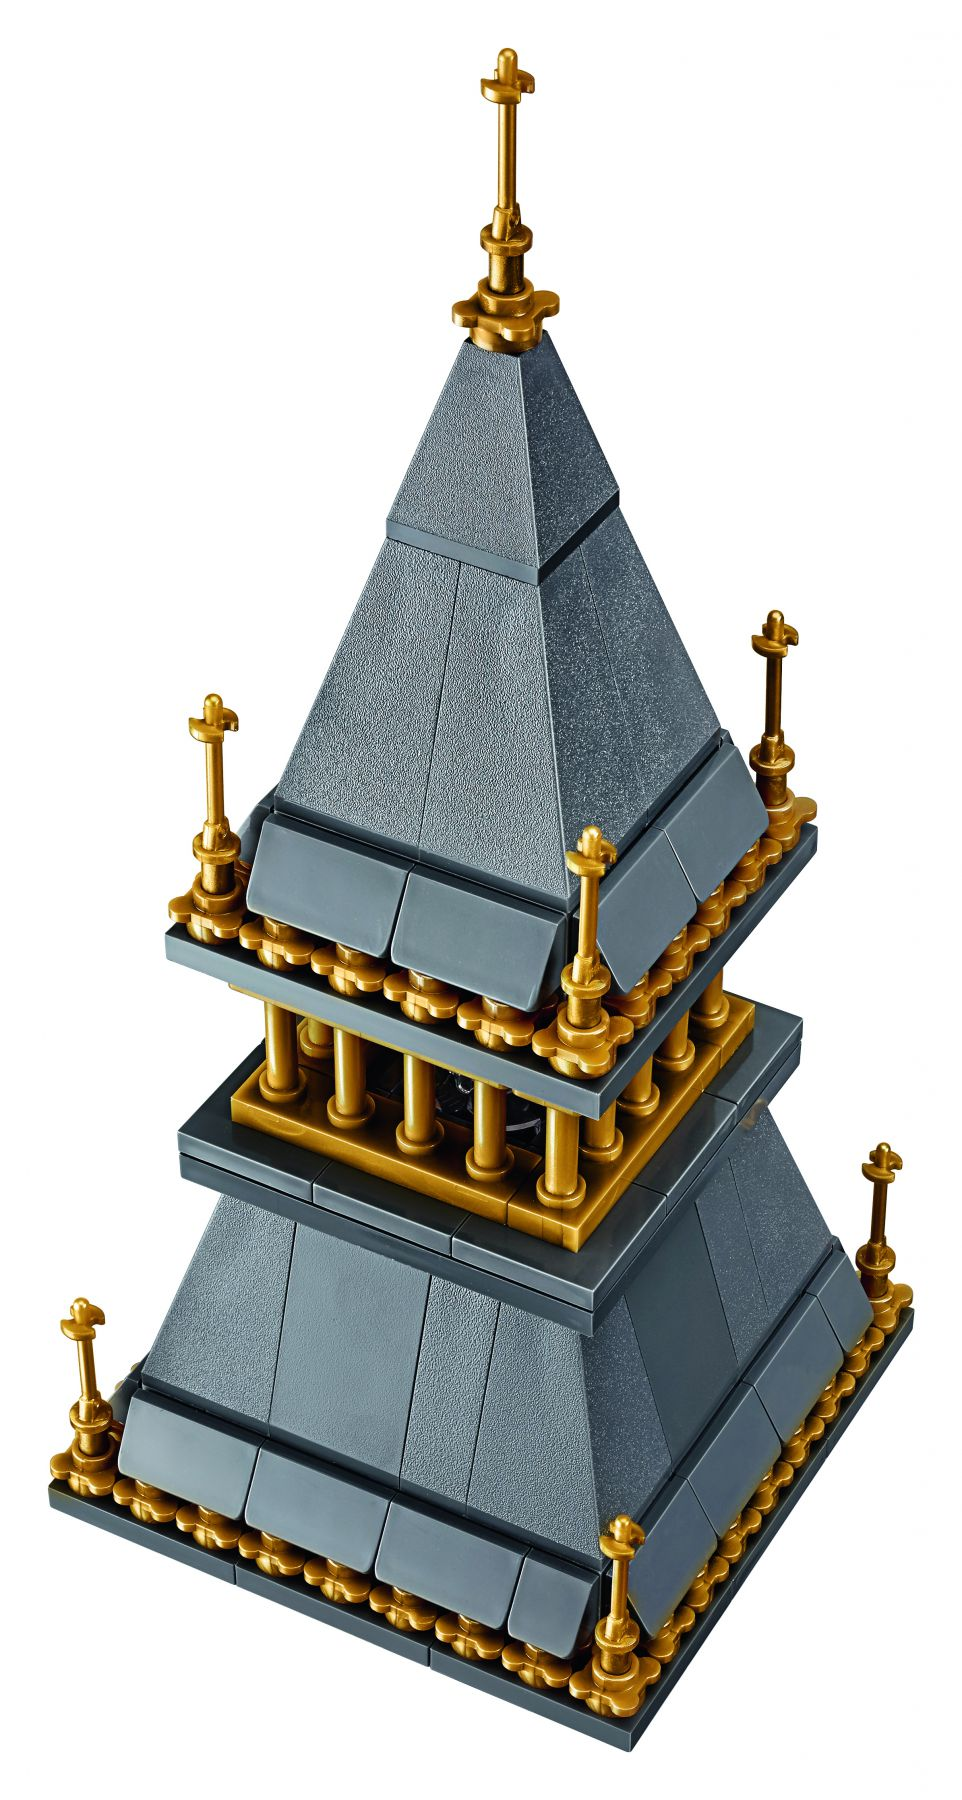 LEGO Advanced Models 10253 Big Ben LEGO_Creator_Big_Ben_10253-13.jpg